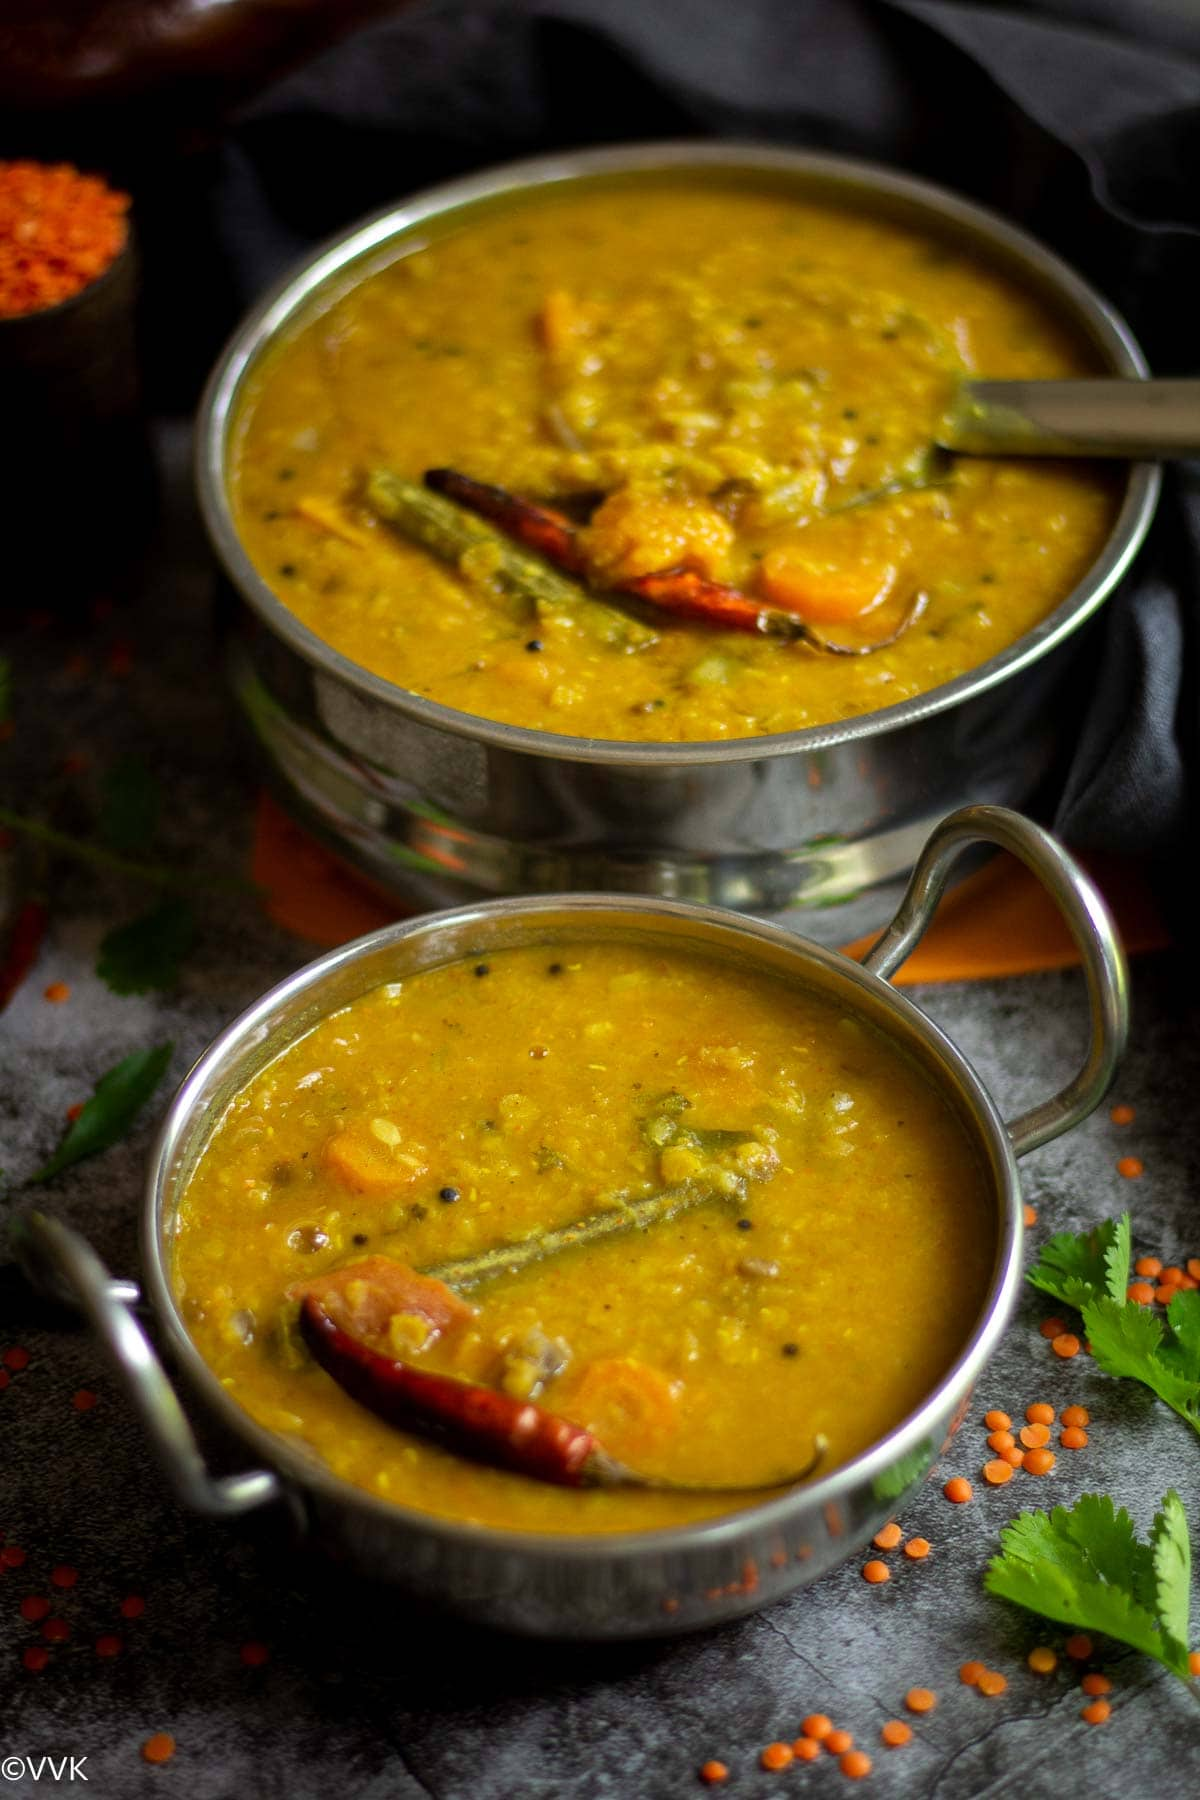 masoor dal sambar served in kadai vessel with cilantro on the side and with some masoor dal sprinkled